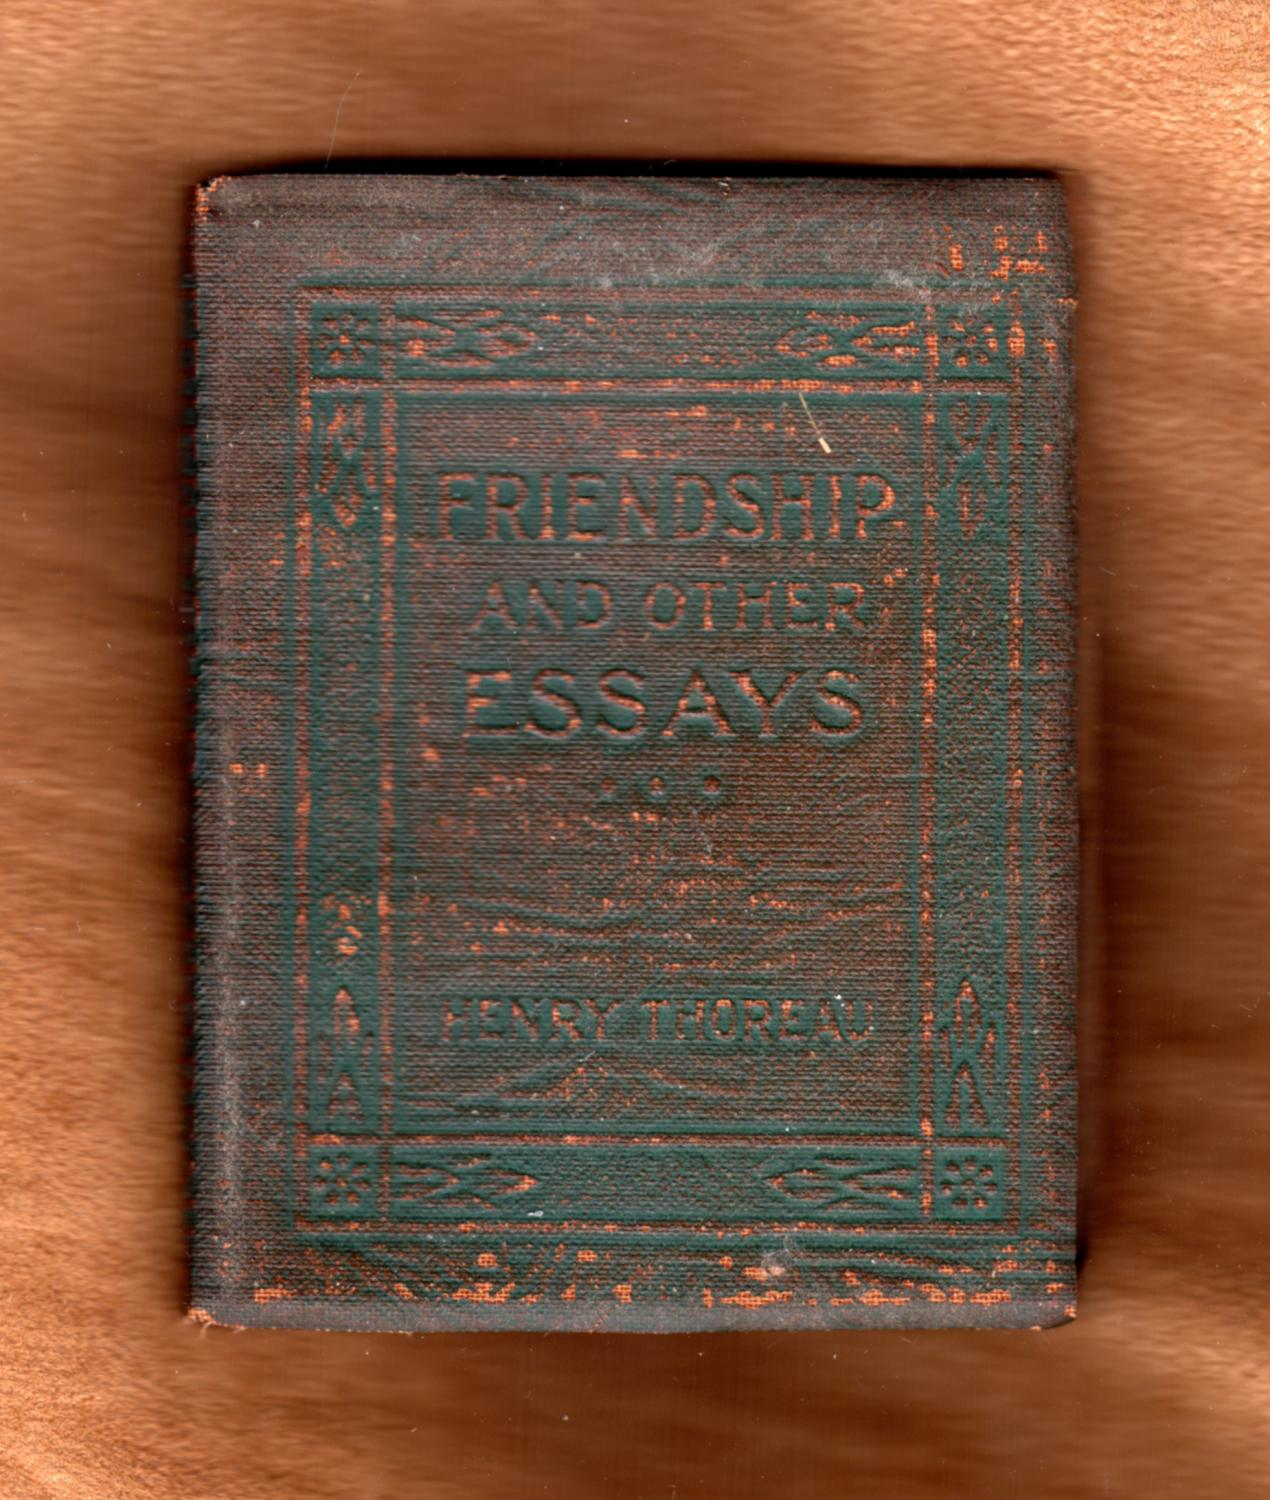 henry thoreau friendship and other essays little leather library  henry thoreau friendship and other essays little leather library variant green and copper